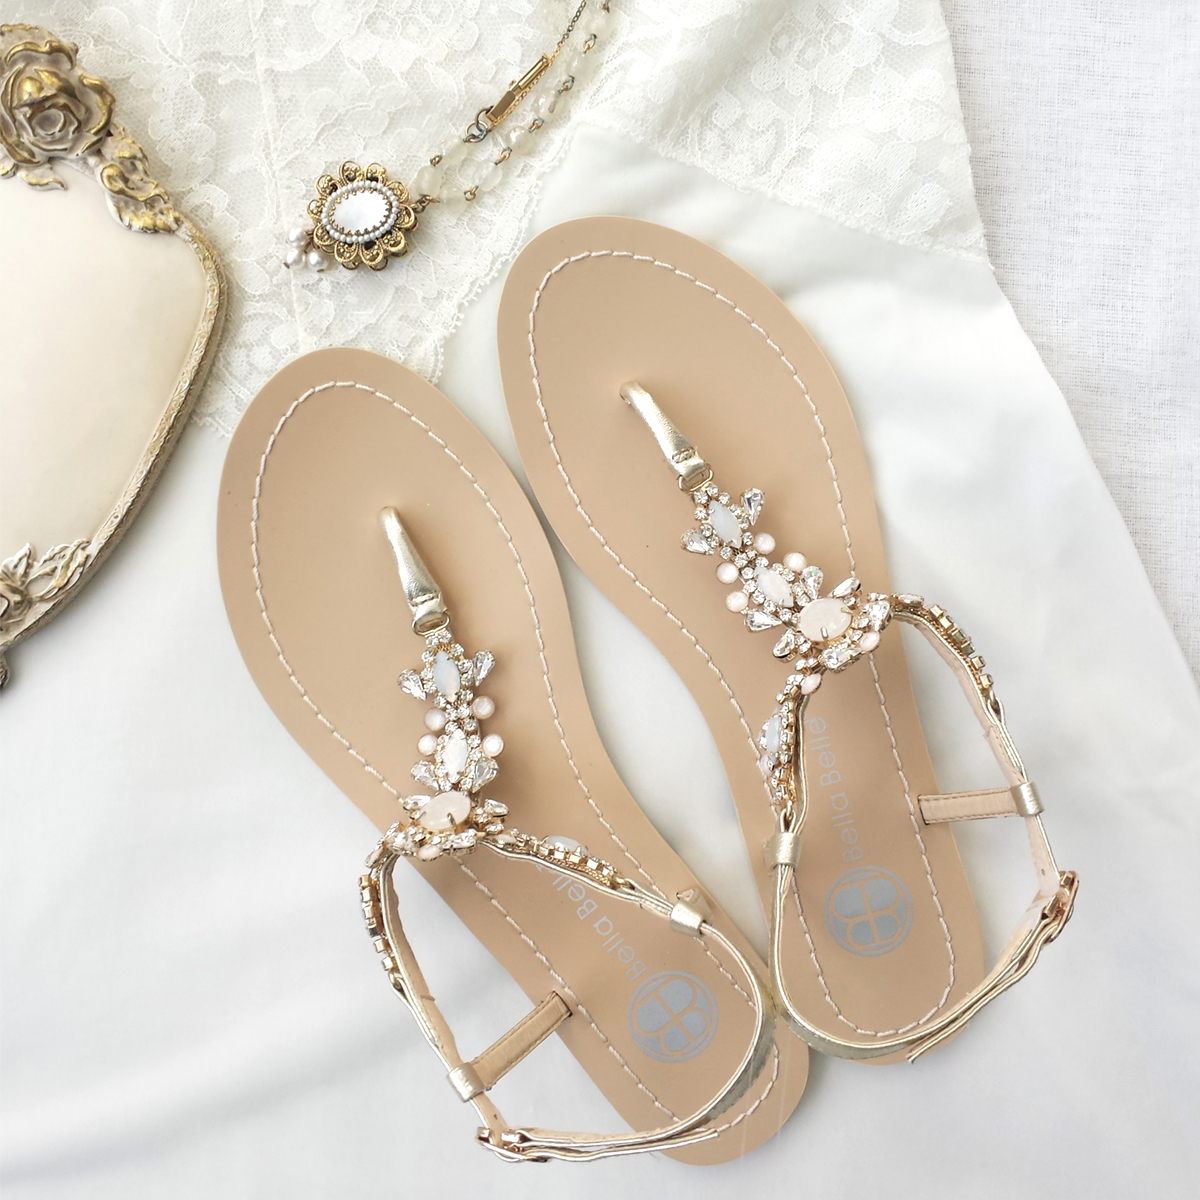 shoestodyefor wedding sandals Shoes To Dye For The largest selection of bridal shoes and accessories in the Boston Metro region